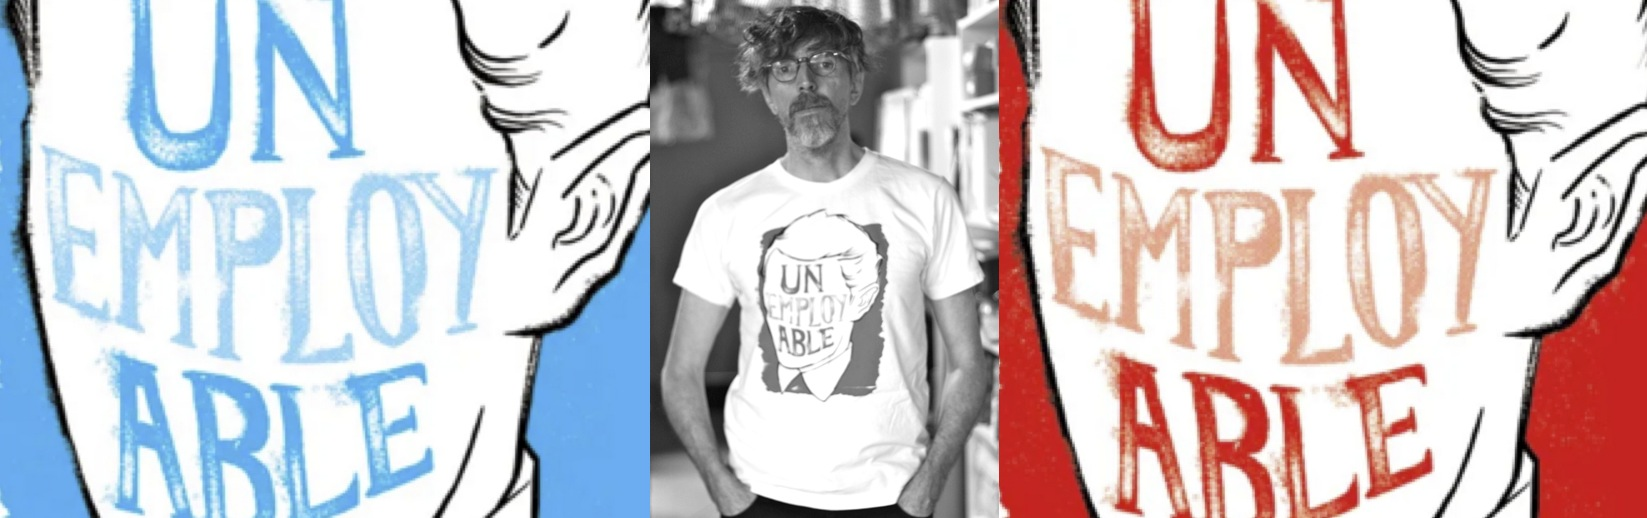 'UNemployABLE' t-shirt from http://weliveheretoo.bigcartel.com/